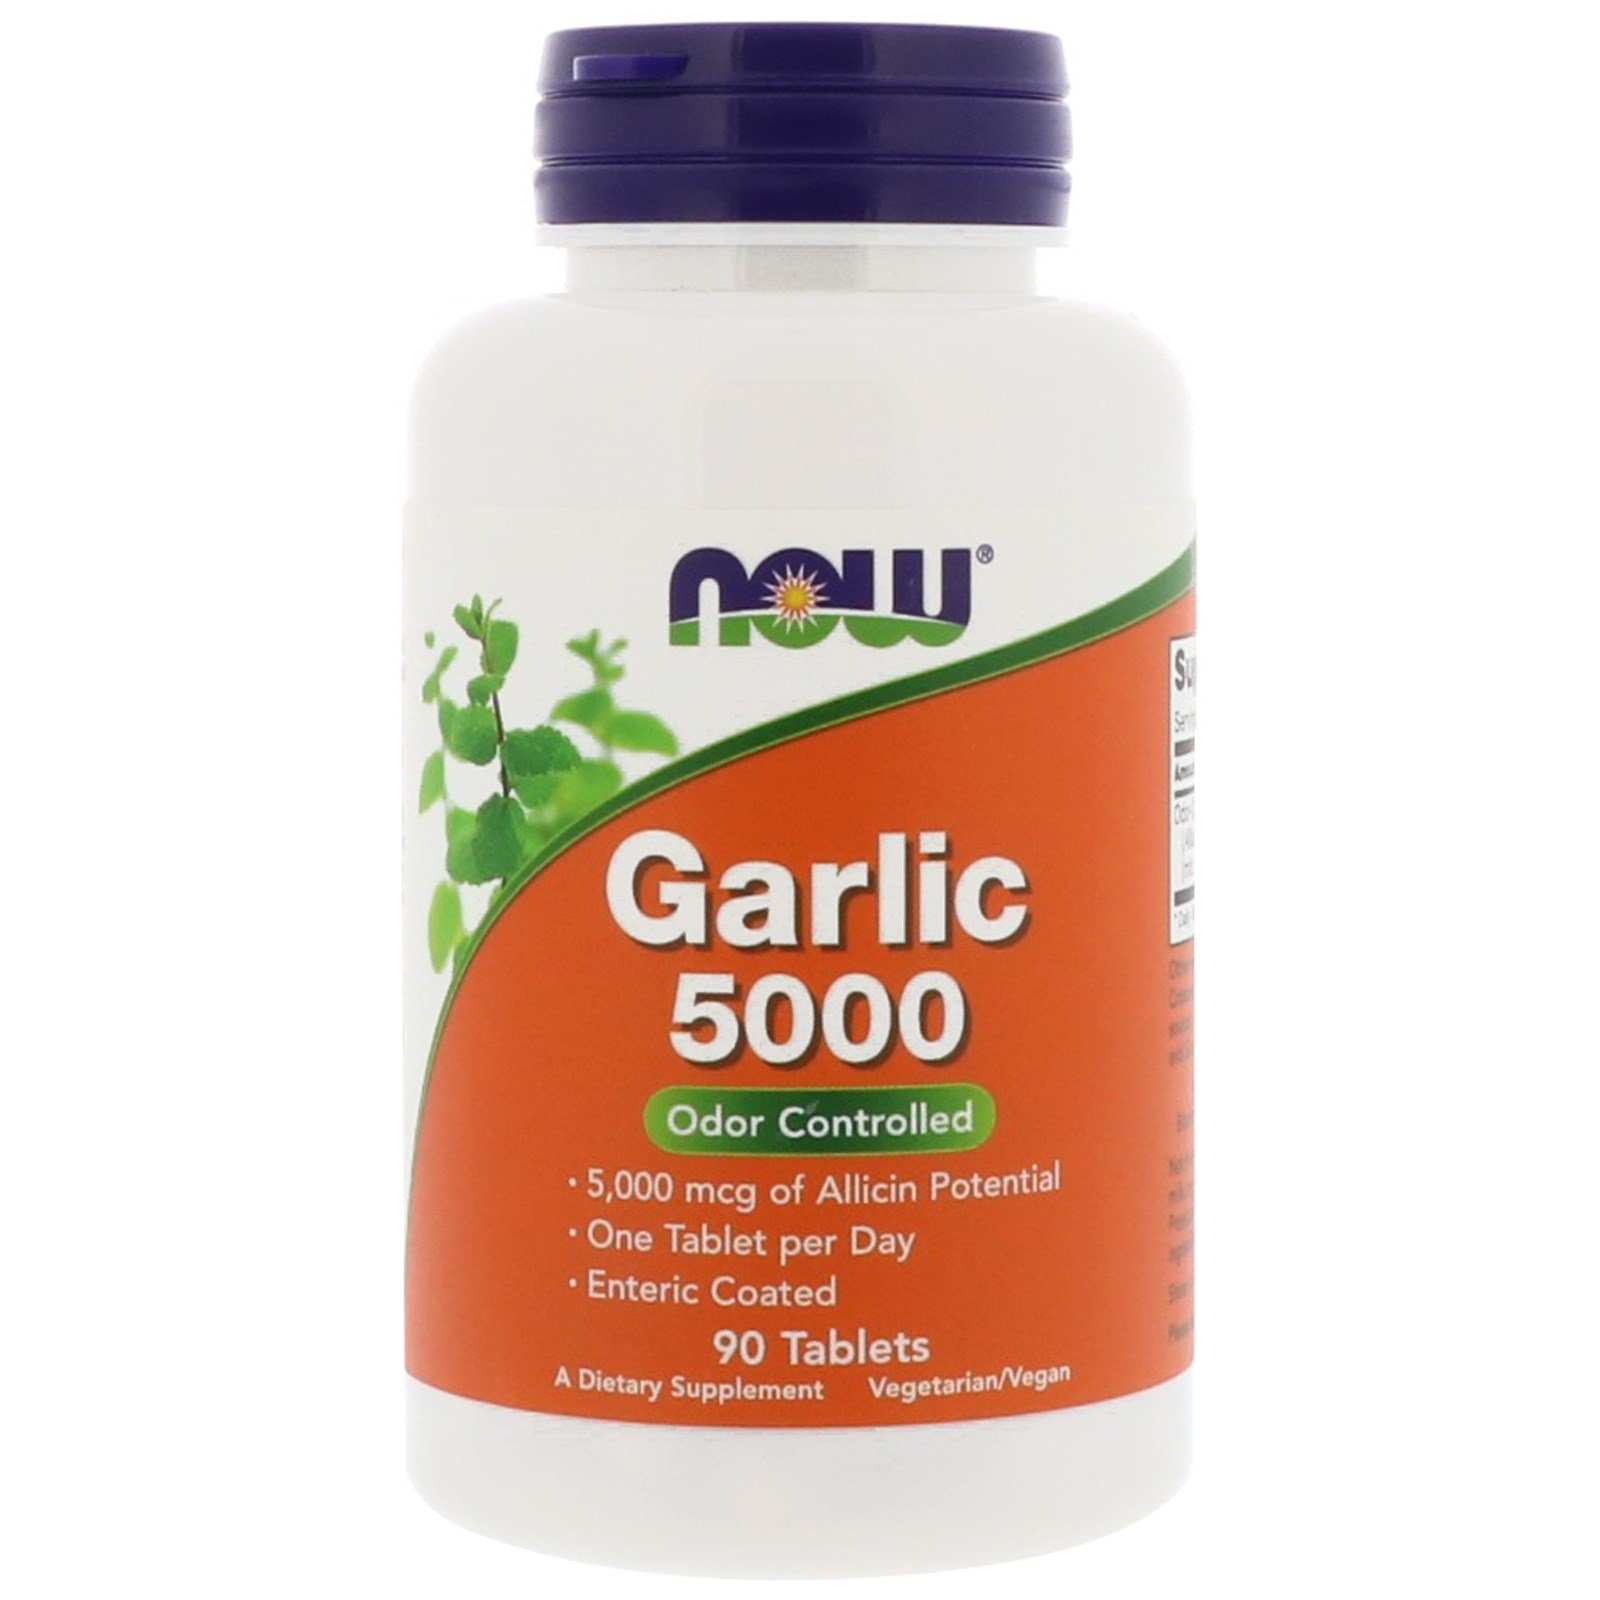 Image of Garlic 5000 (90 tablets) - Now Foods 0733739018144